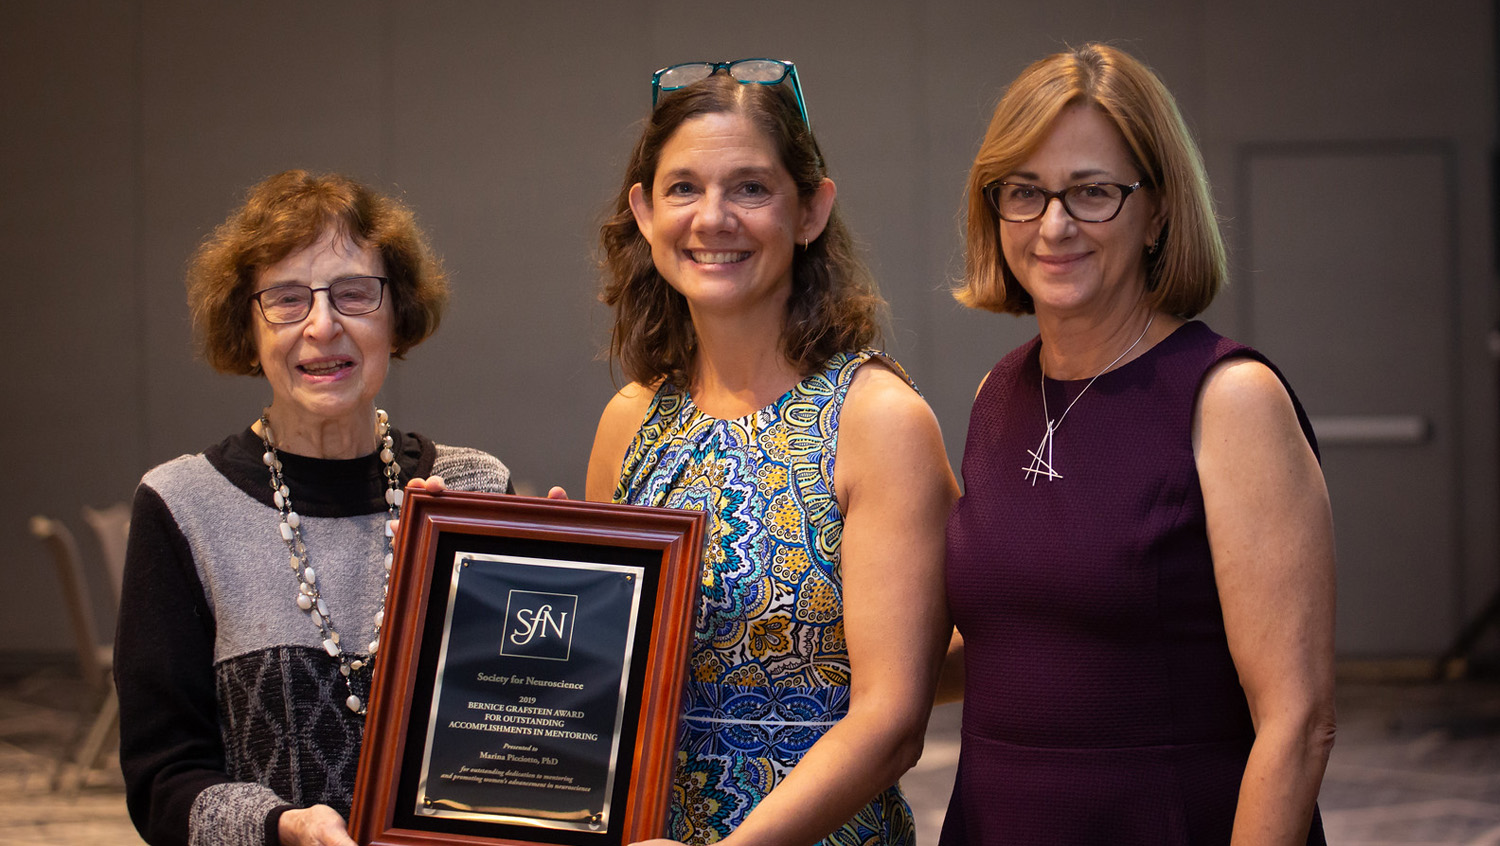 Marina Picciotto, PhD (center), of Yale University, is honored with the Bernice Grafstein Award for Outstanding Accomplishments in Mentoring.